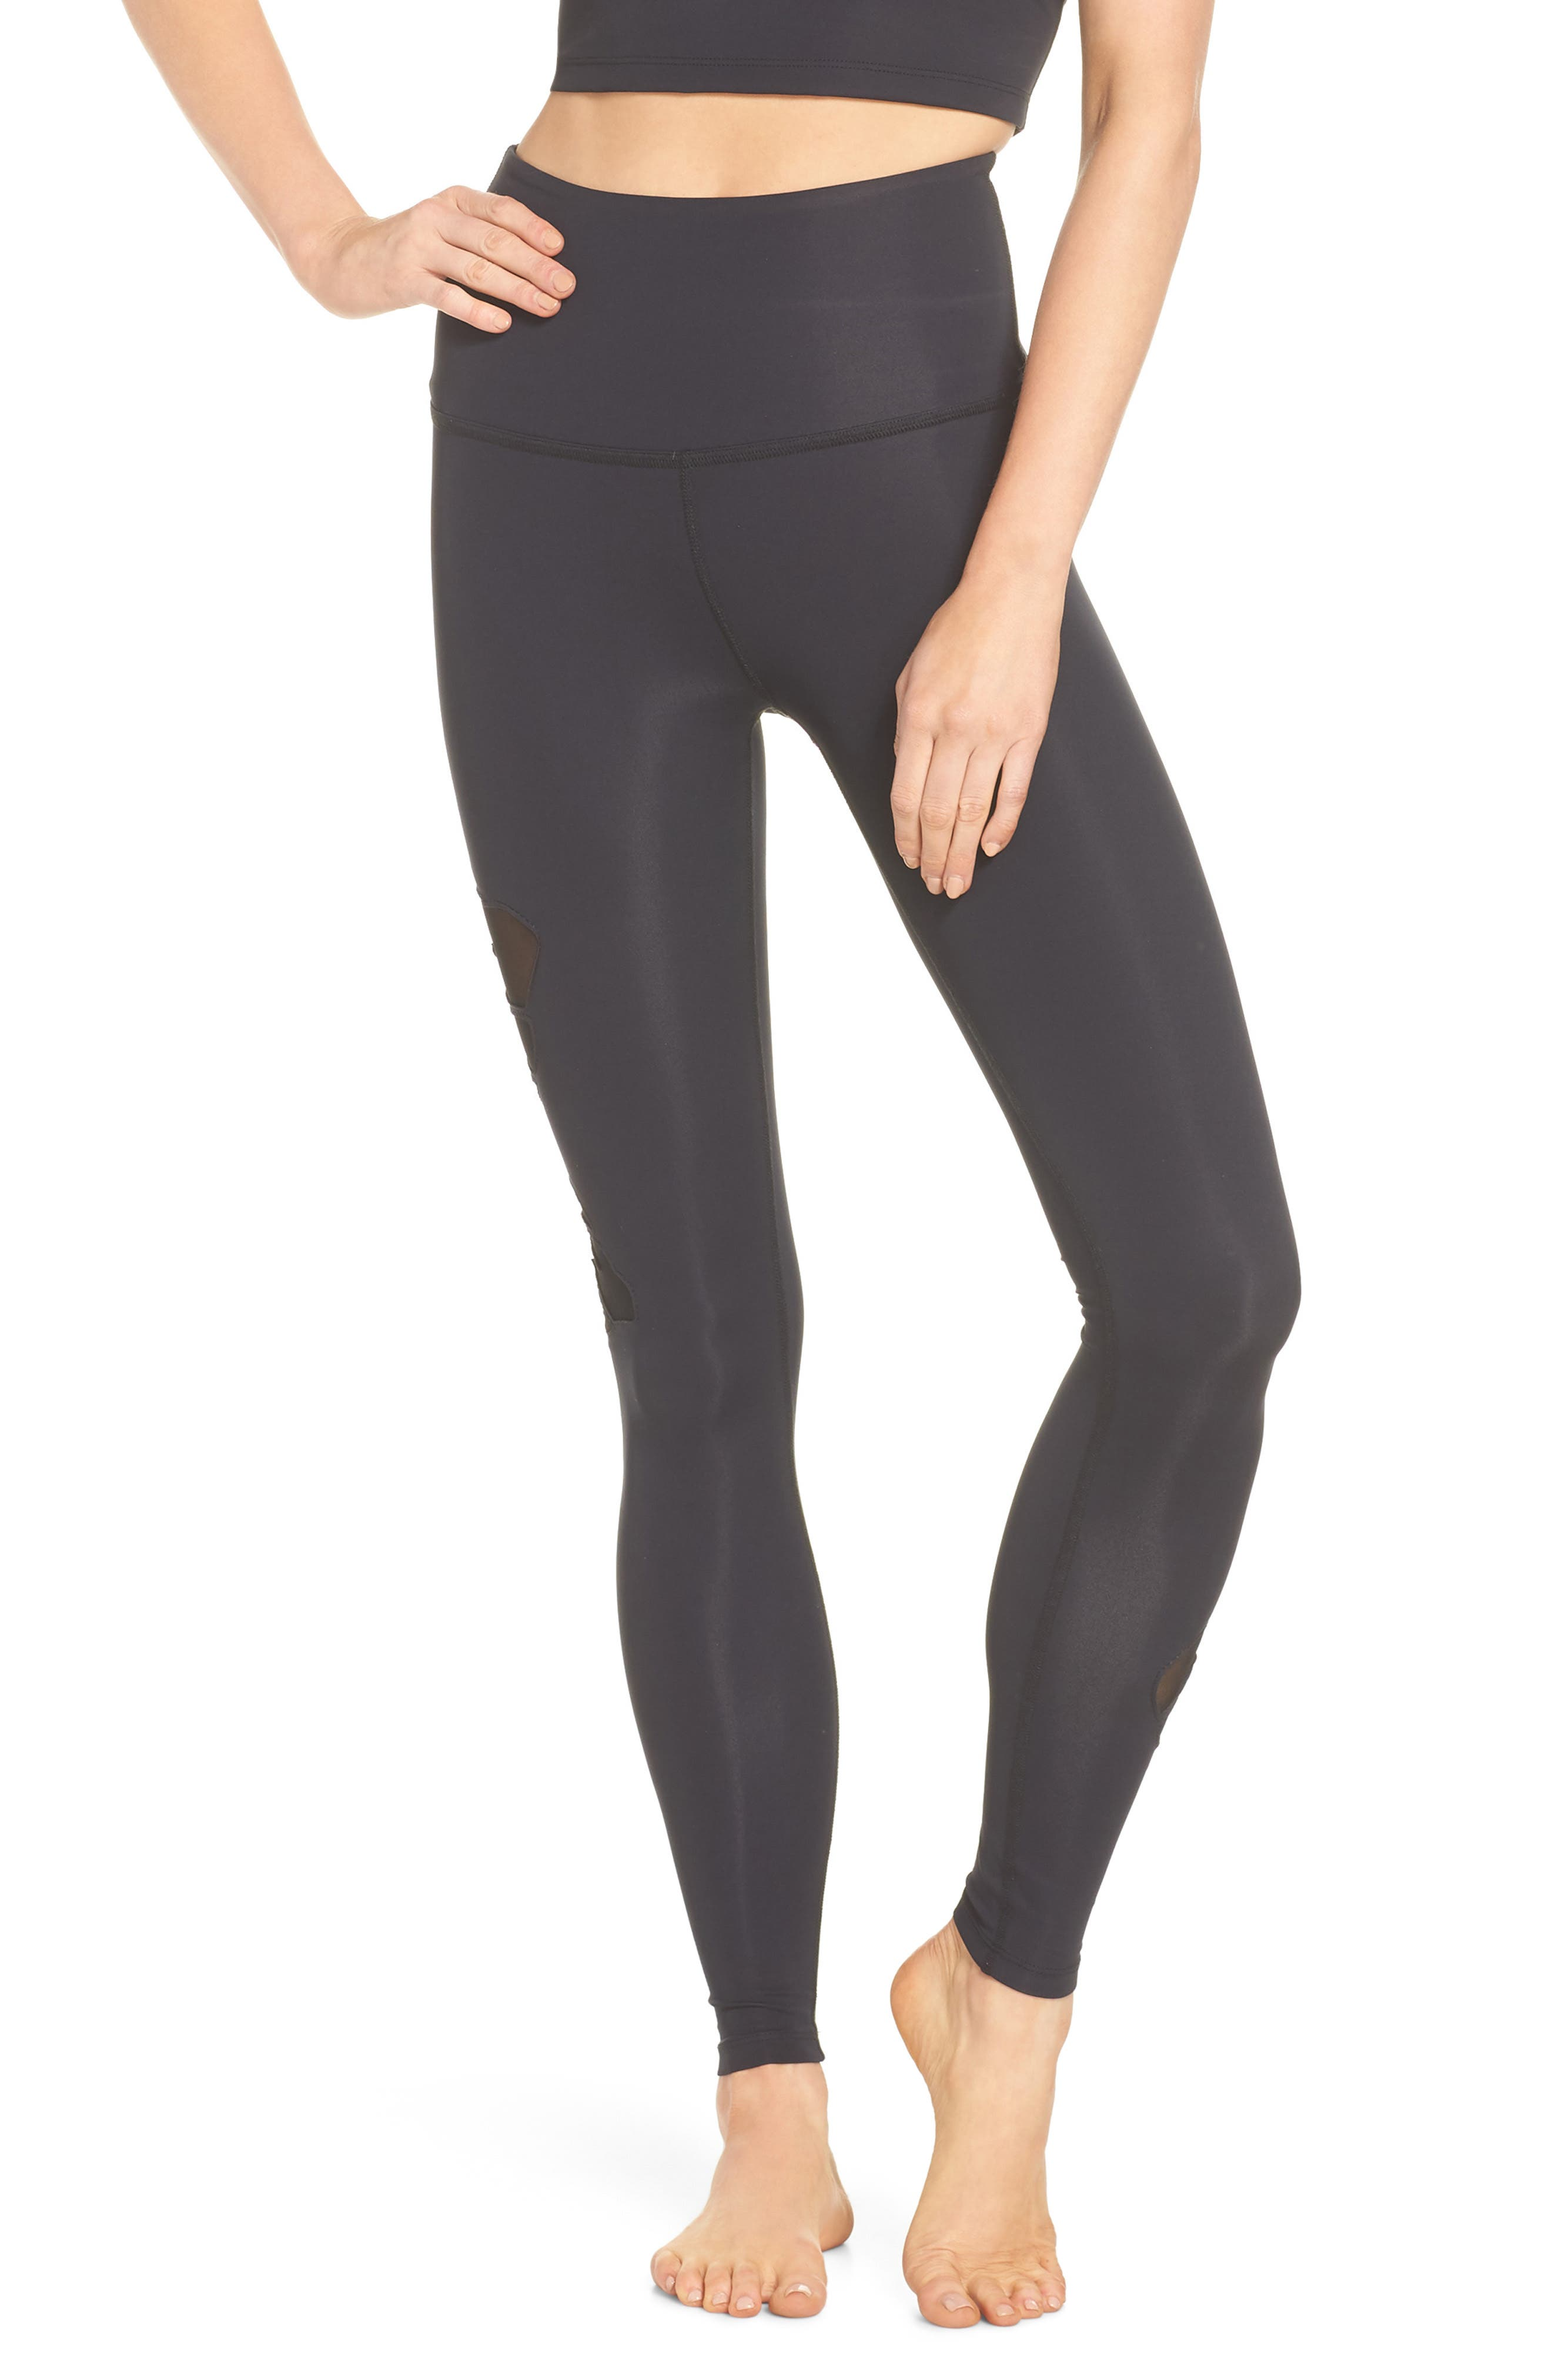 Take Leaf High Waist Leggings,                         Main,                         color, 002